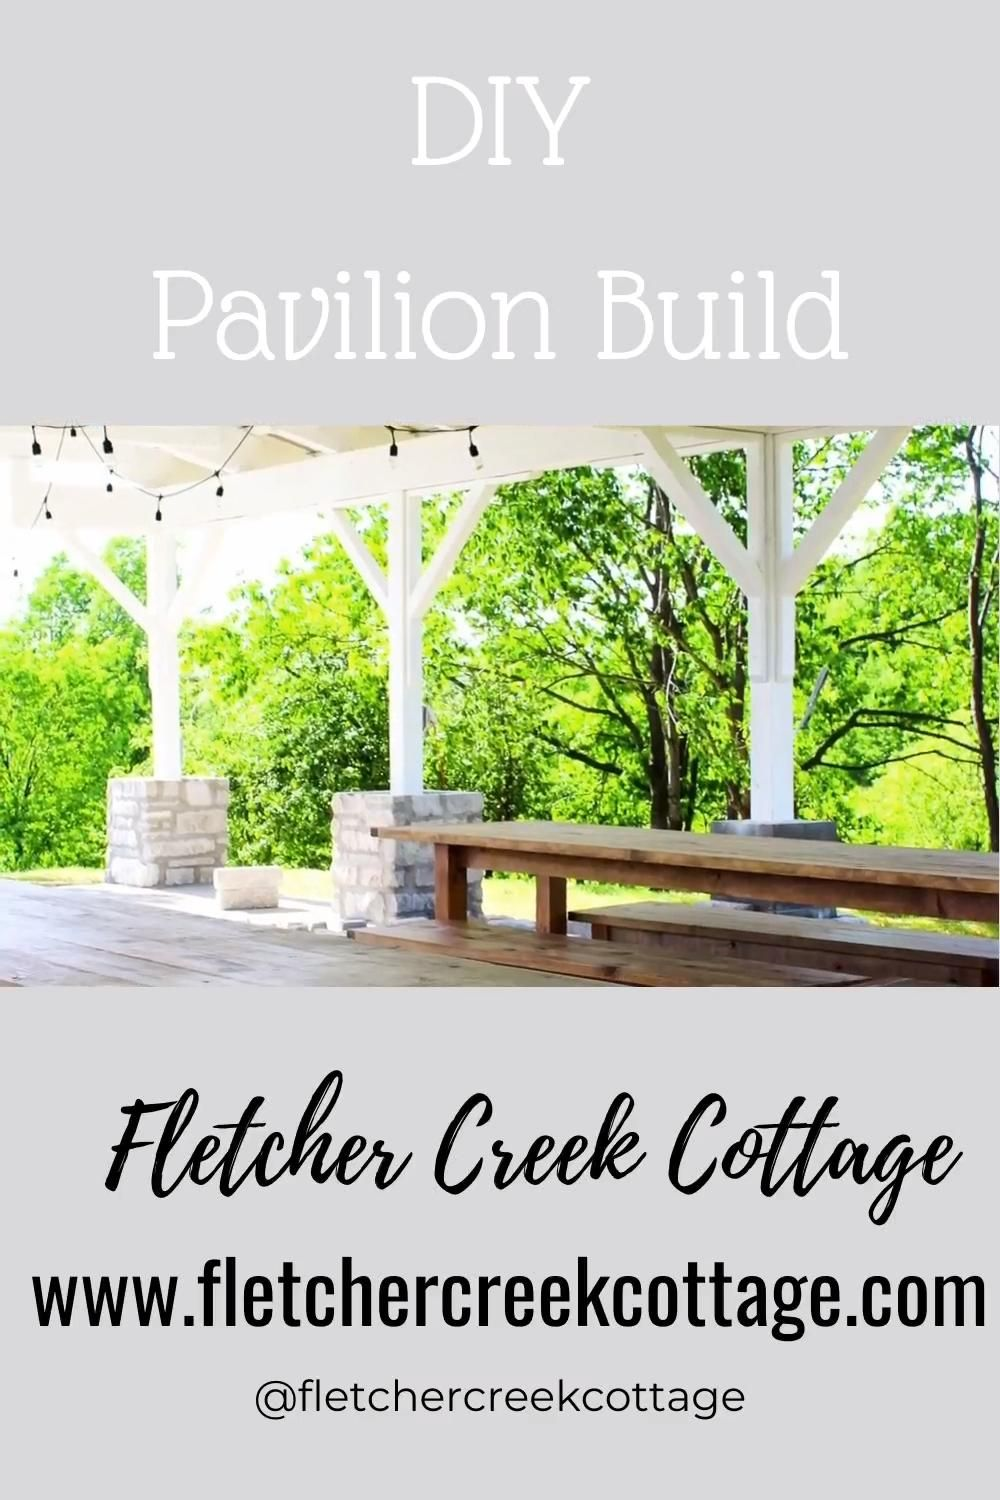 We have been busy here at Fletcher Creek Cottage and we've been turning our backyard into an oasis by building a DIY Pavilion!!!  Follow along as we tackle DIY projects together on the blog www.fletchercreekcottage.com or @fletchercreekcottage for day to day DIY fun!!!   #diy #diybuild #building #homeprojects #diyprojects #husbandandwifeteam #diyblog